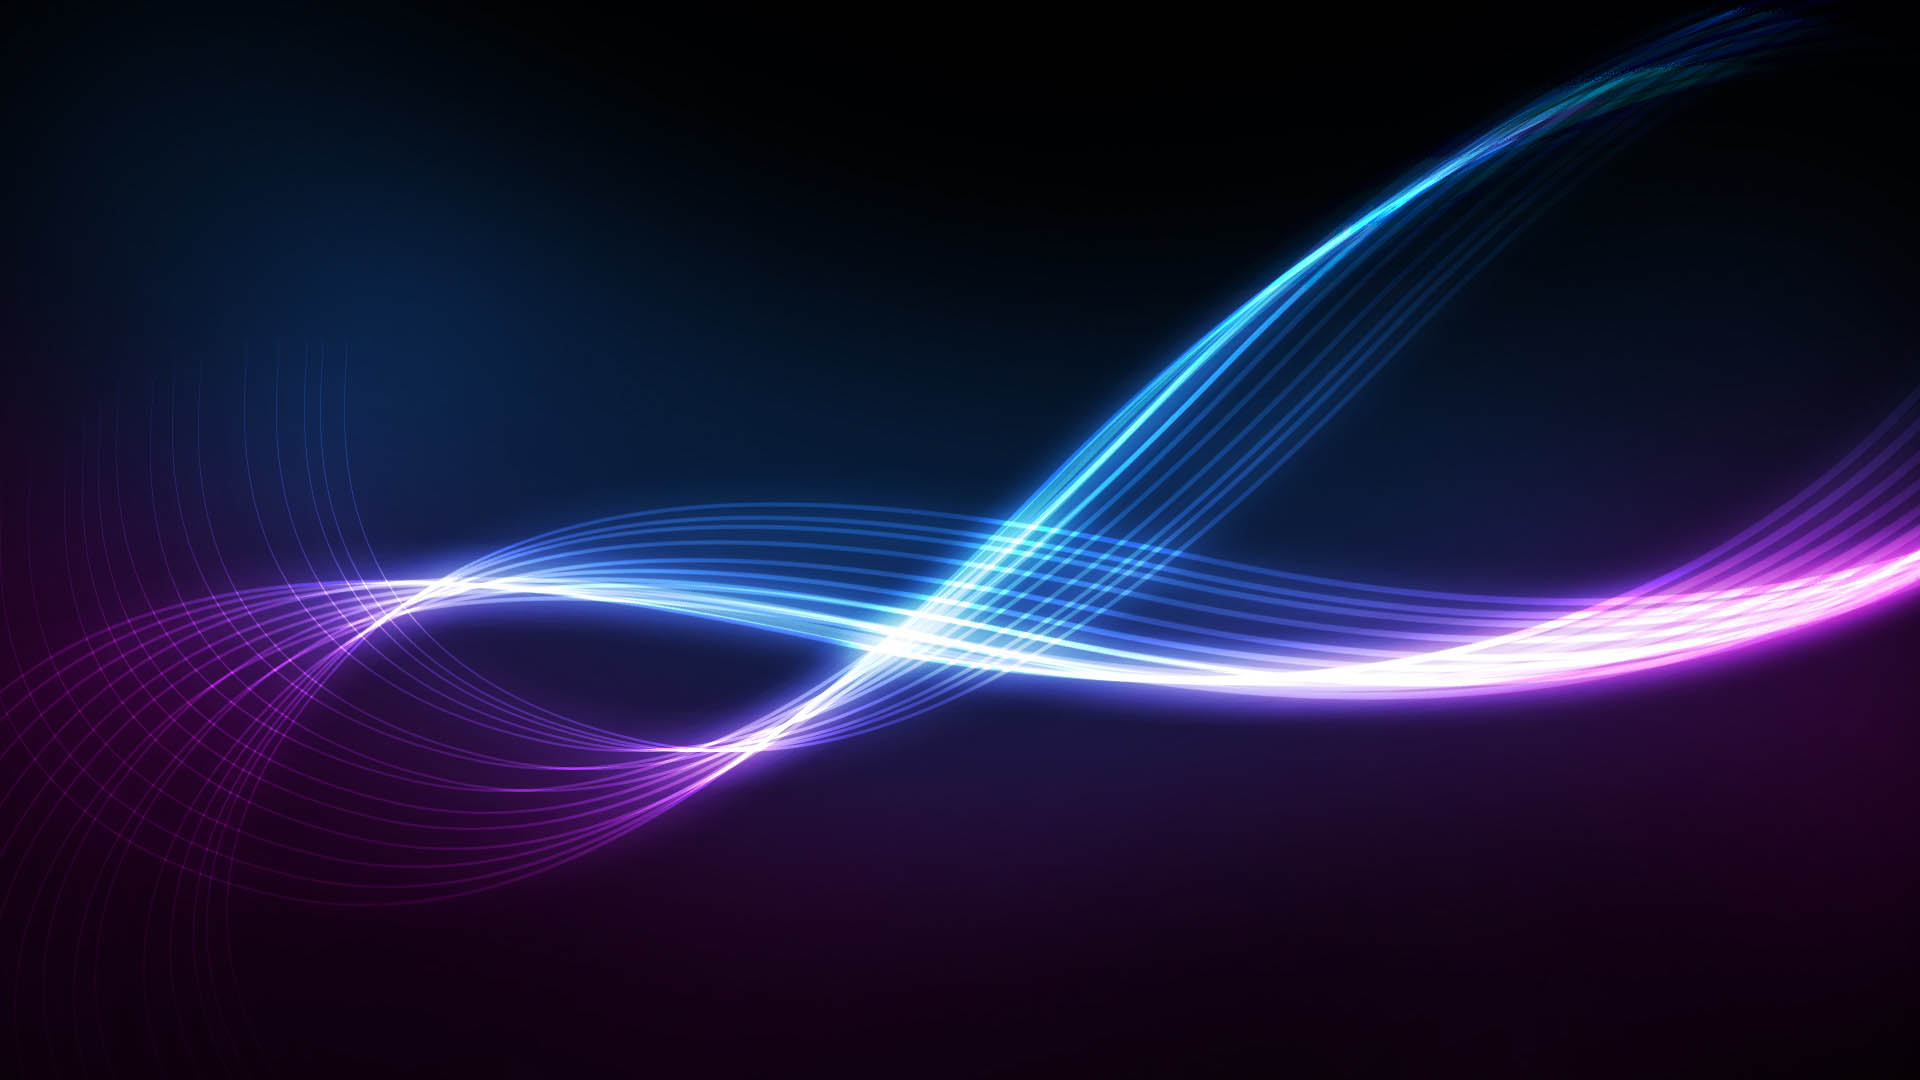 Abstract Desktop Backgrounds - WallpaperSafari